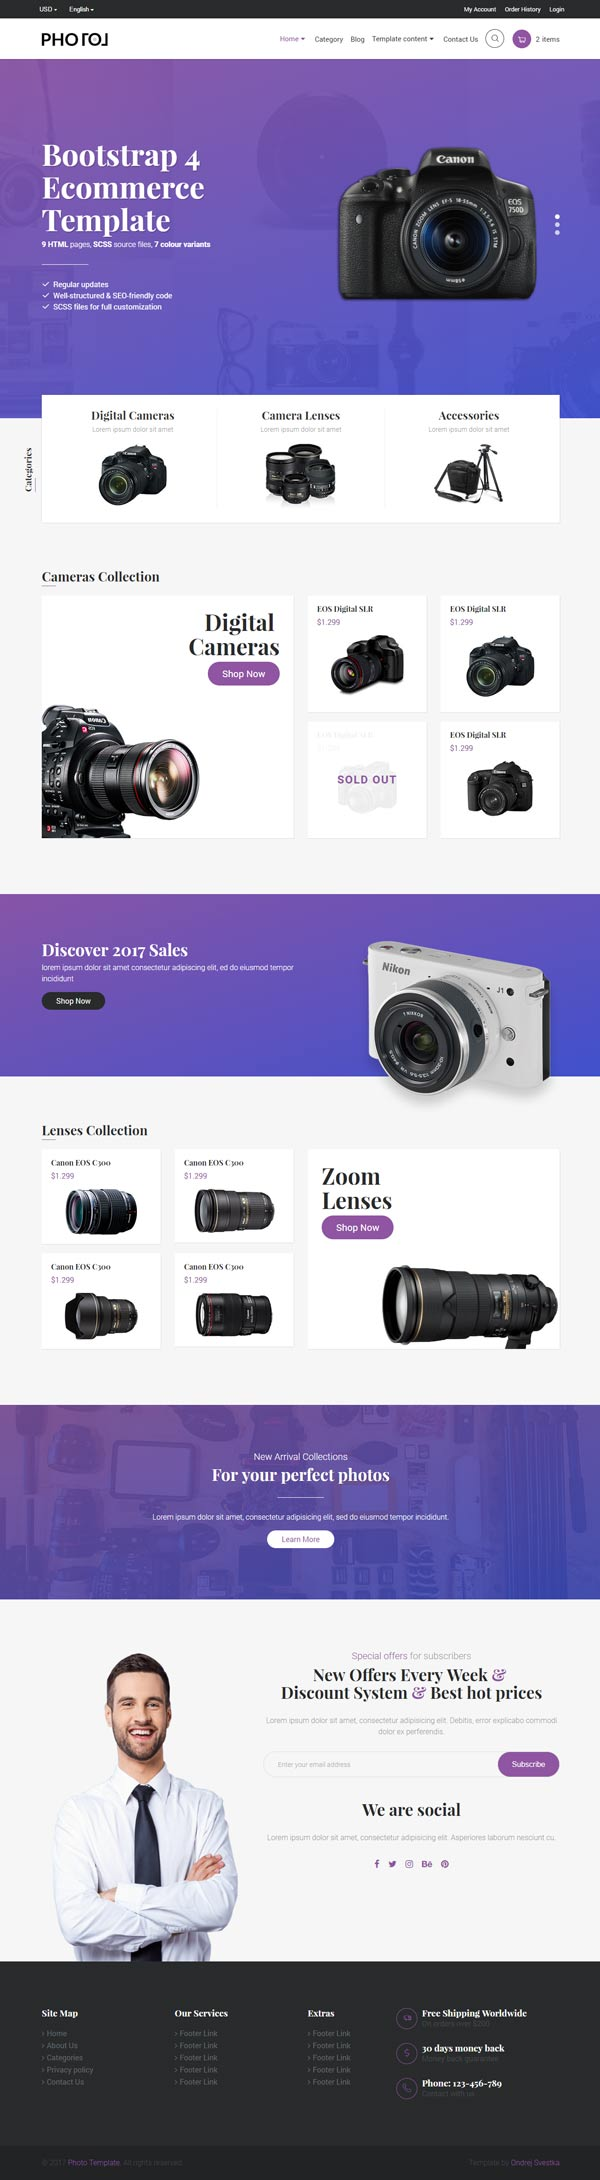 Premium Bootstrap 4 E Commerce Template 11 Pages 6 Colour